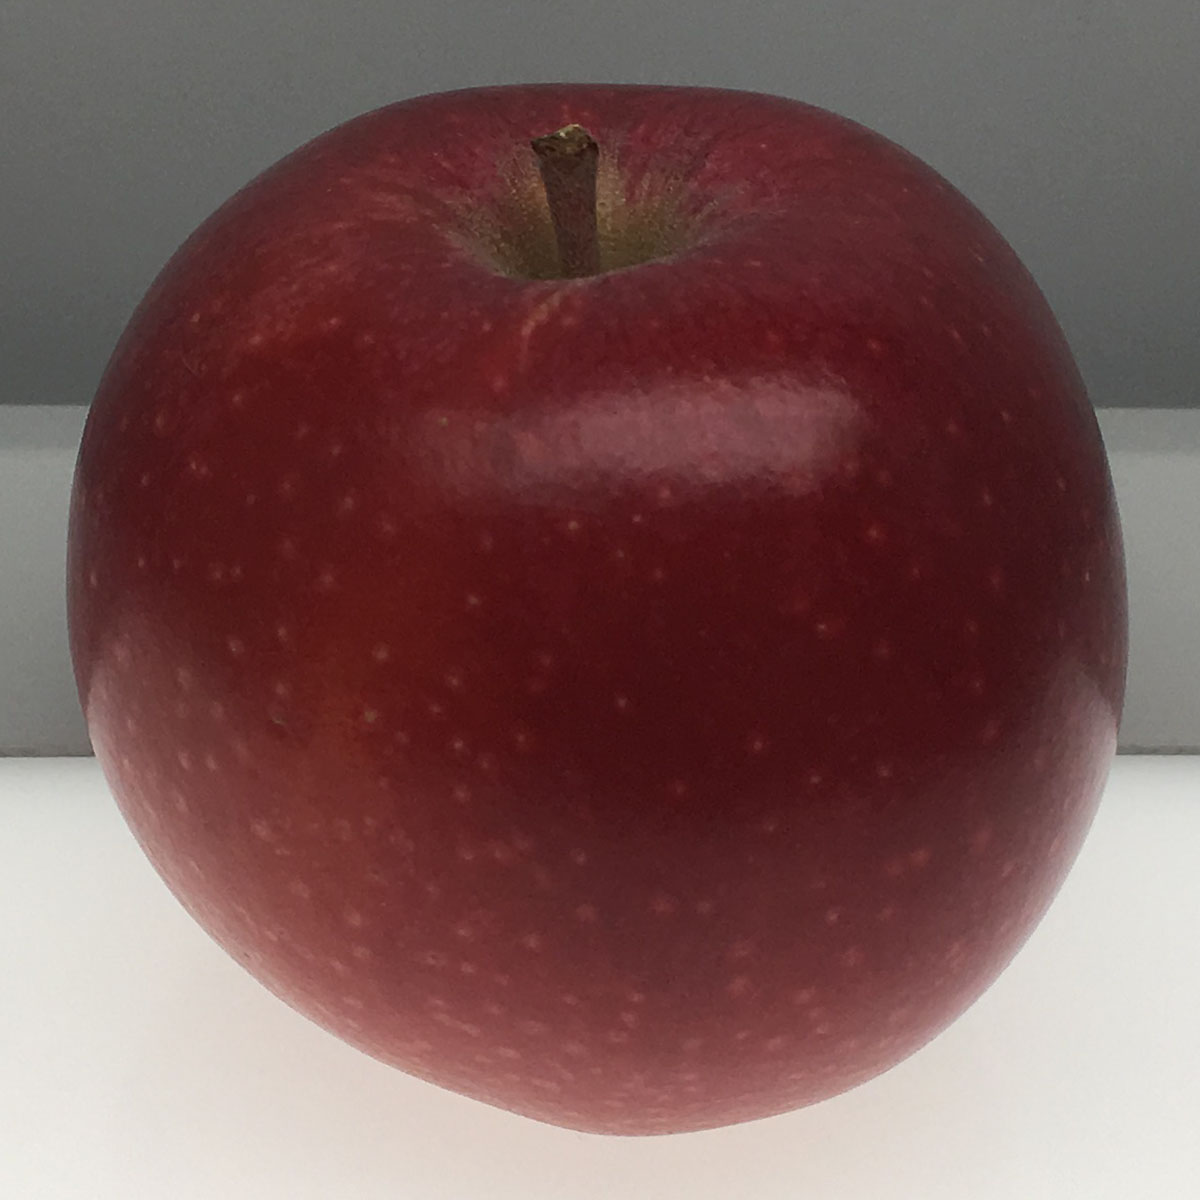 Hauer Pippin apple